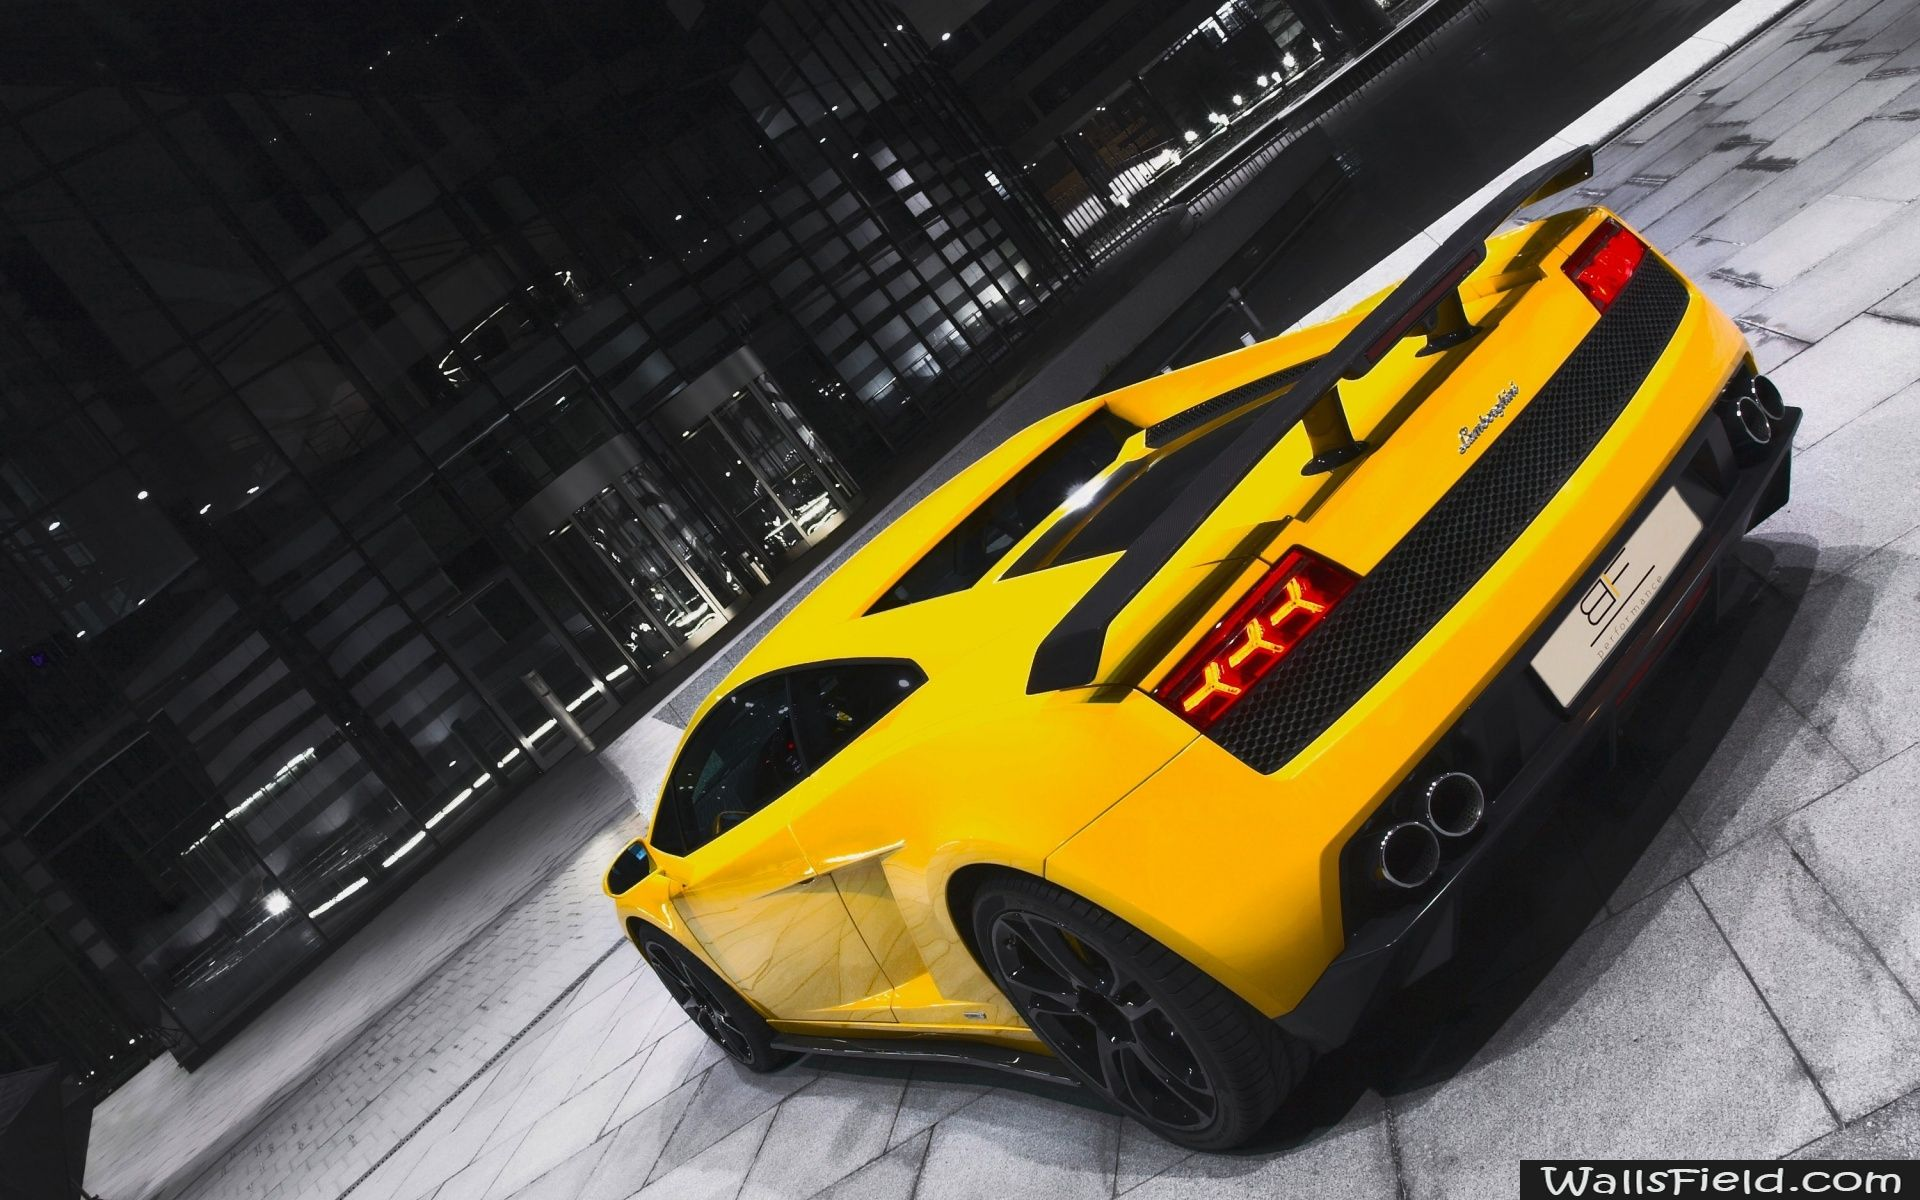 you can view download and comment on gallardo gt600 spyder yellow free hd wallpapers for